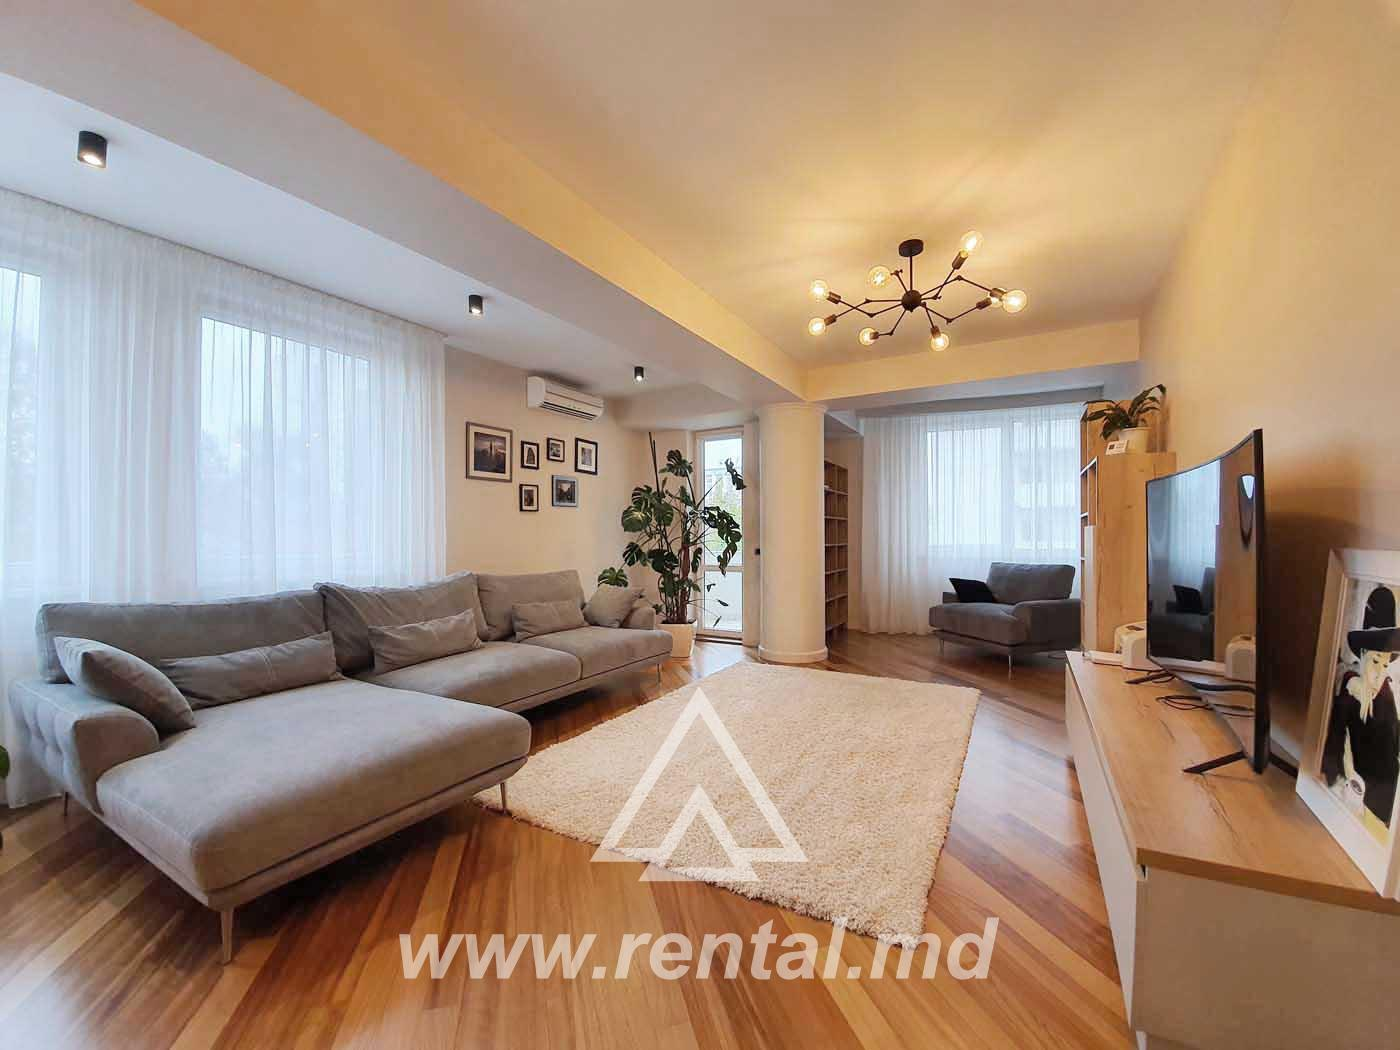 Spacious apartment in the center for sale or rent